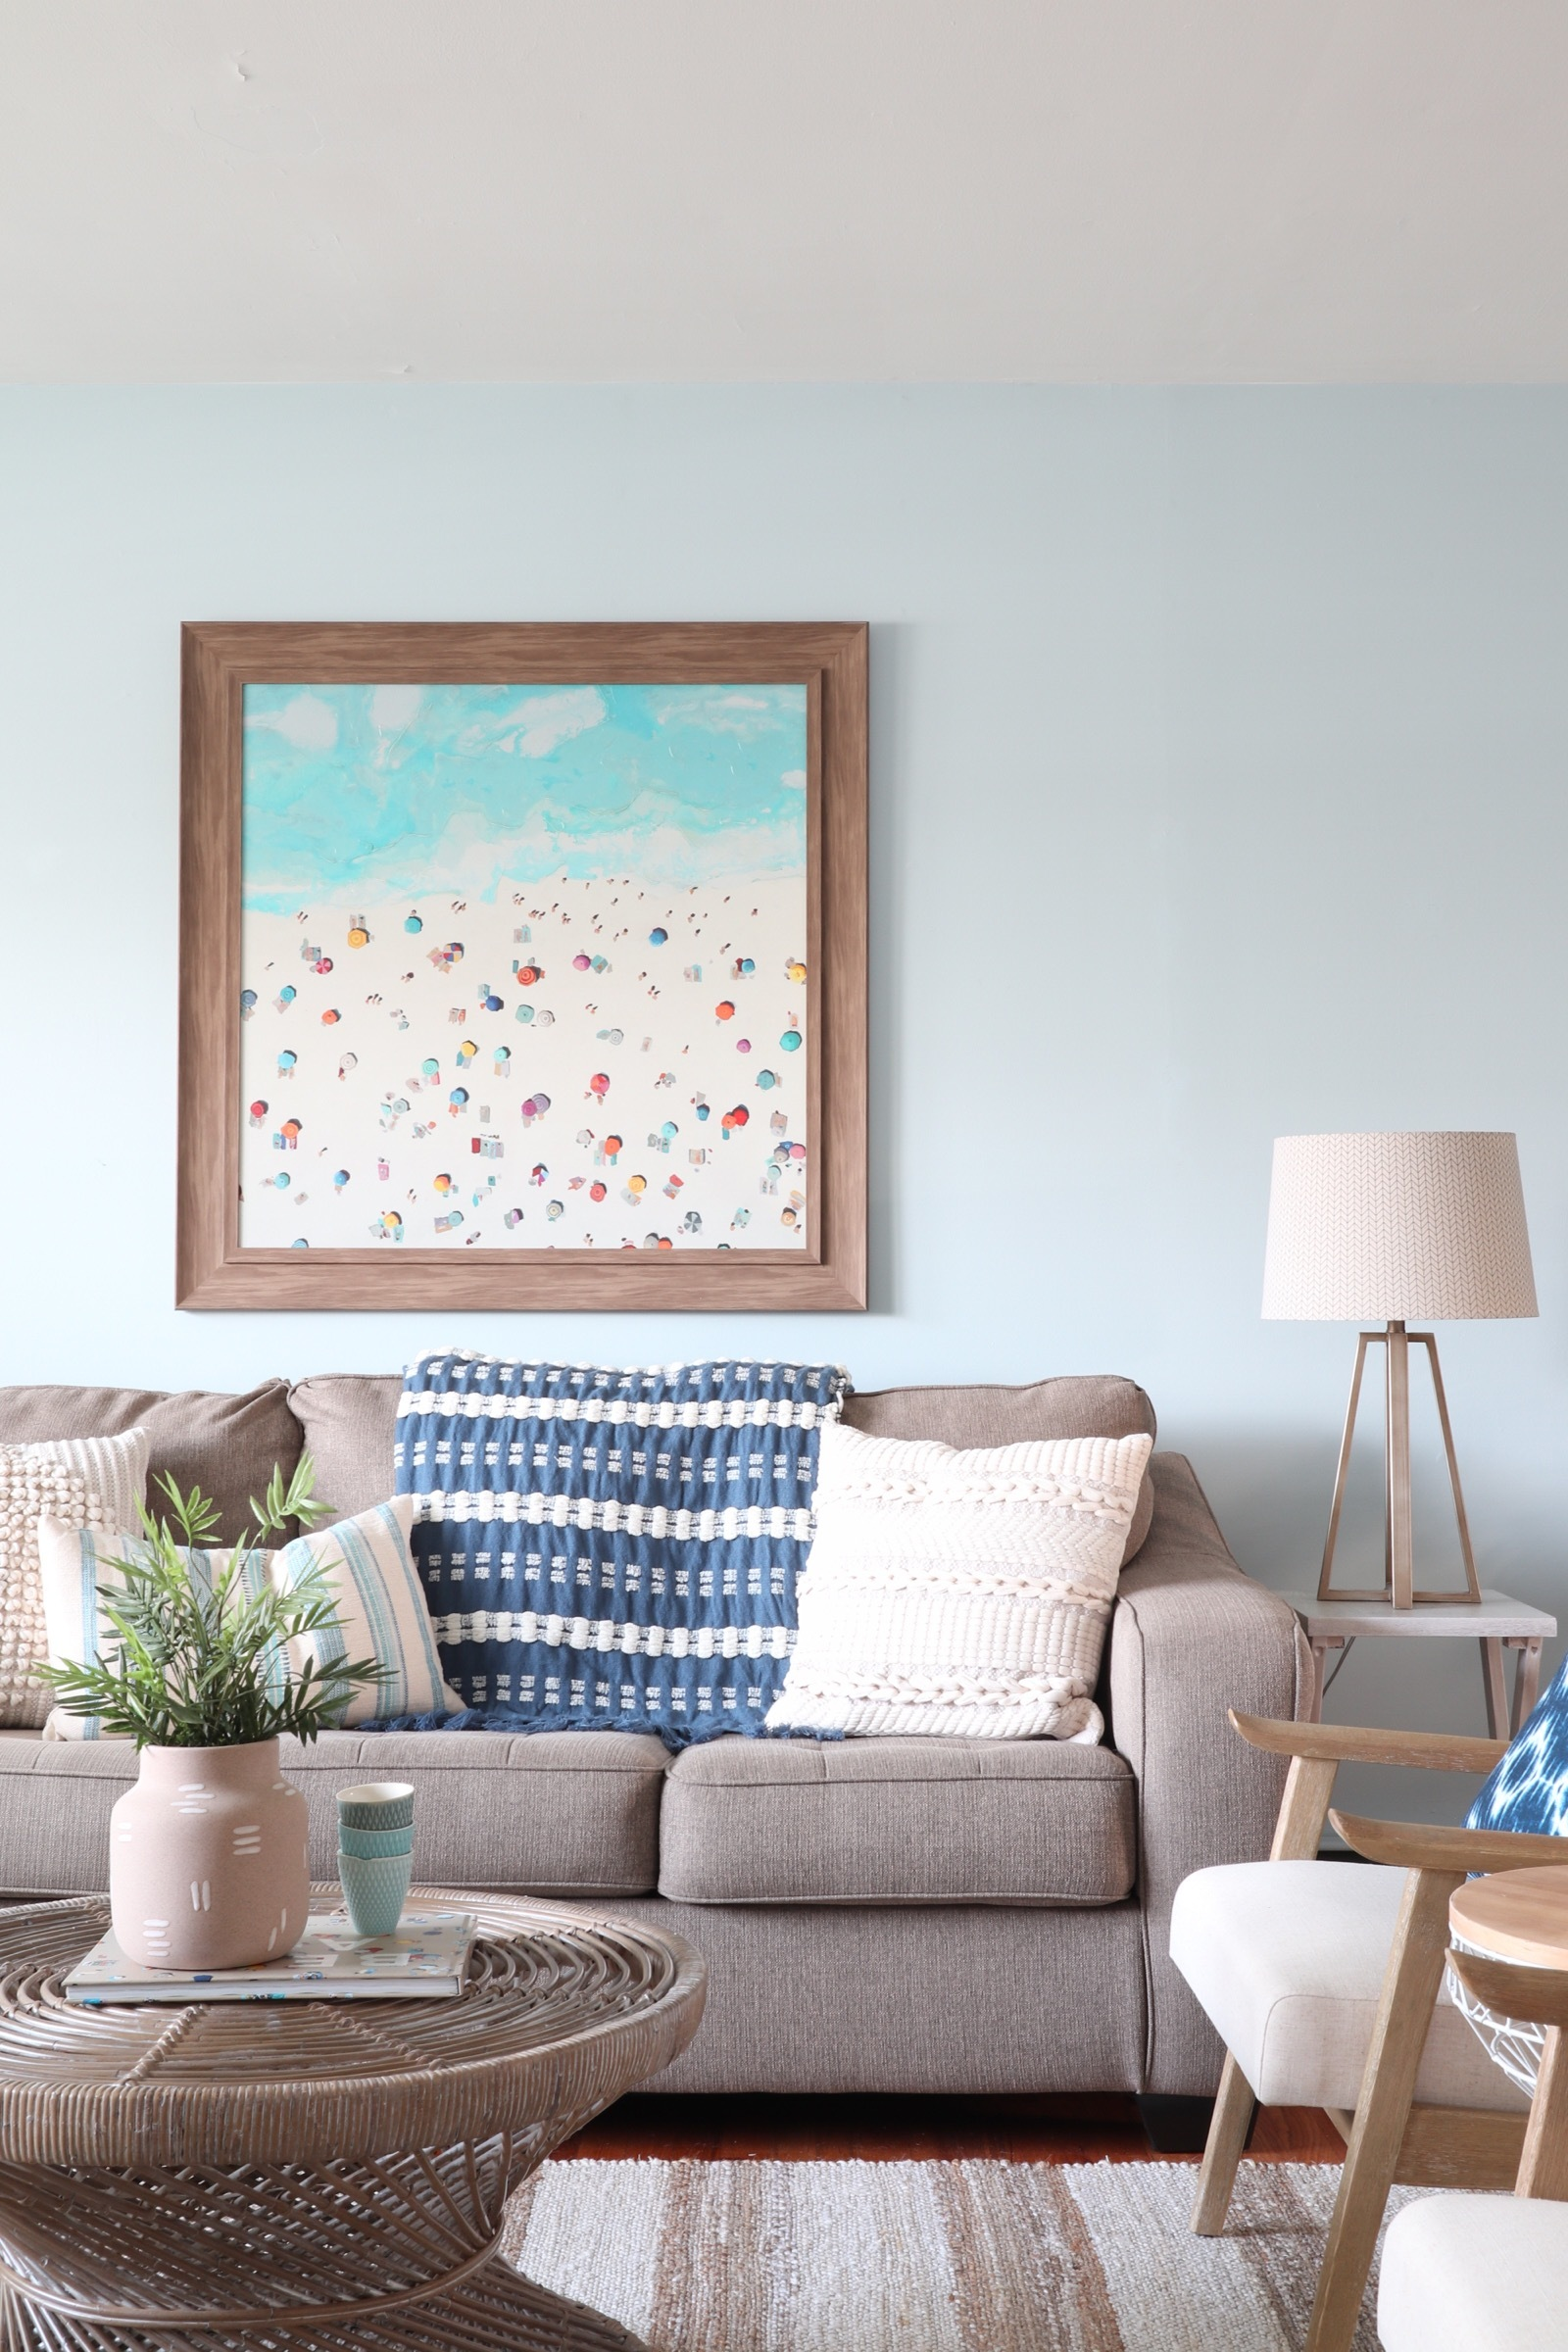 From Too Traditional to Modern Beach Vibes - My sister and her family have a beautiful beach house in New Jersey. Their living room felt a bit too traditional though. I helped transform it into a casual & beachy, yet modern space that is perfect for entertaining guests!